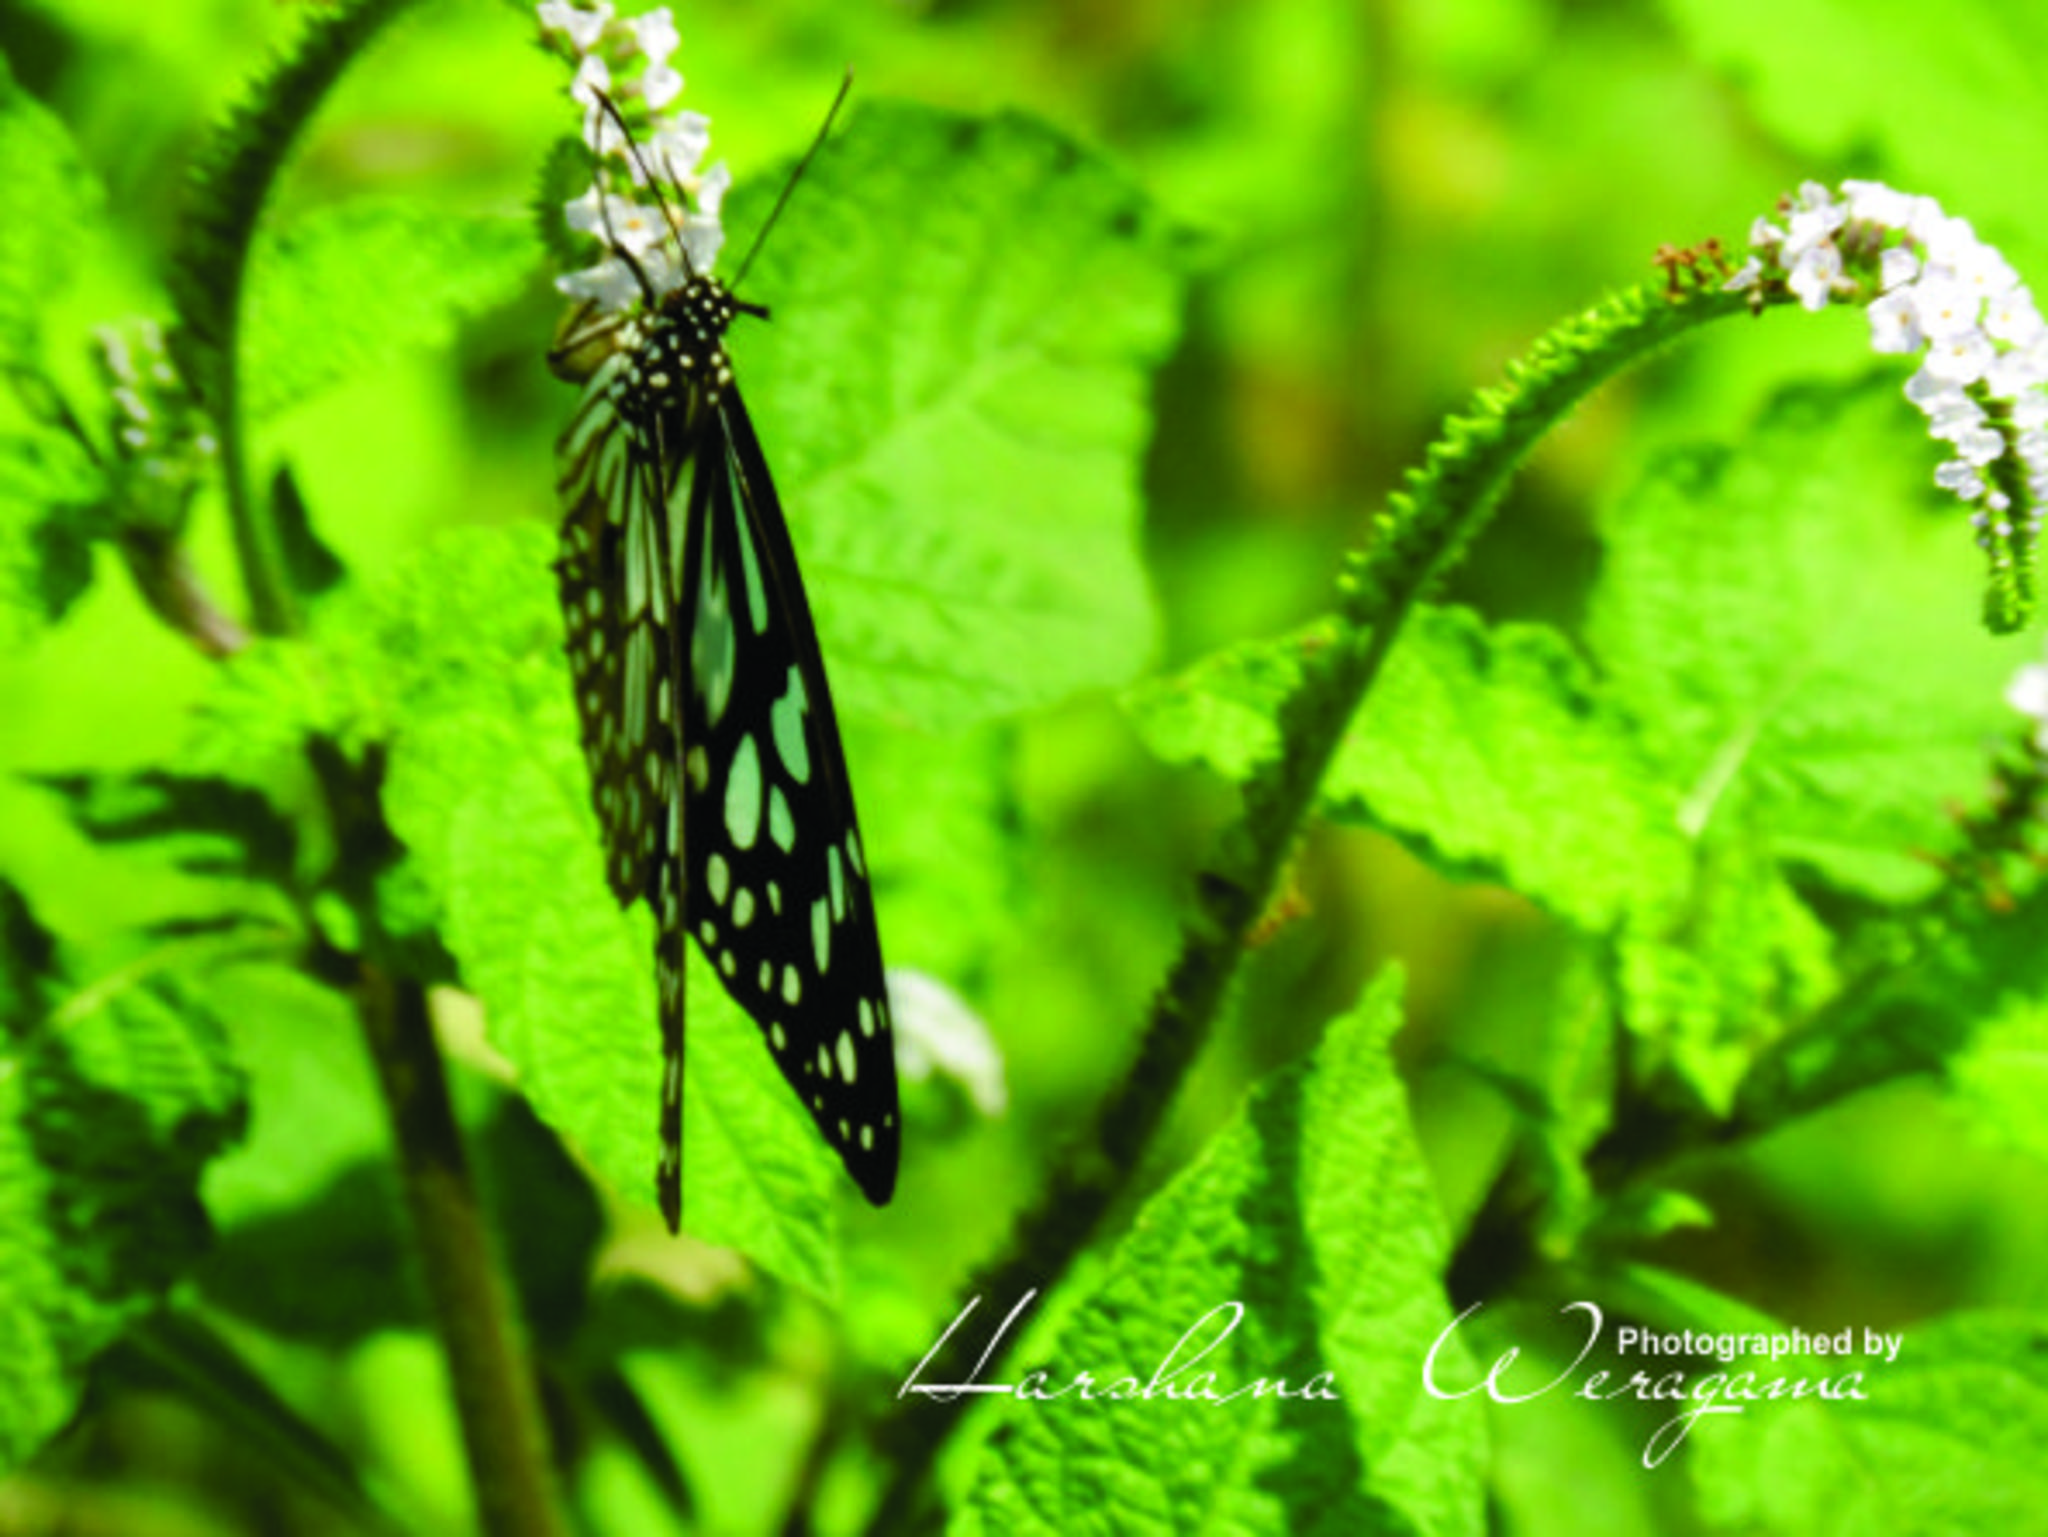 Butterfly and flower by harshana.weragama